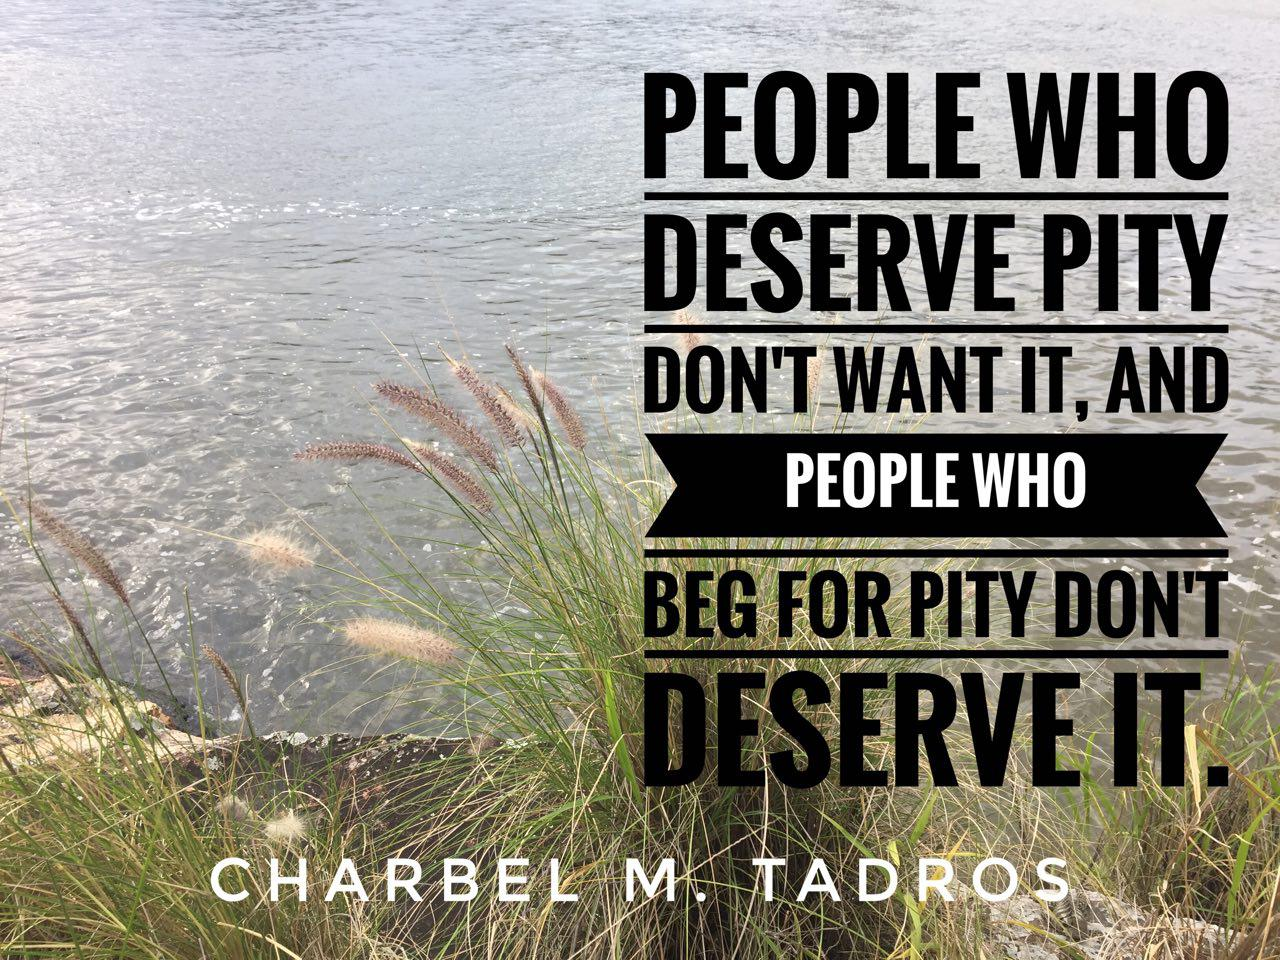 People who deserve pity don't want it, and people who beg for pity don't deserve it.